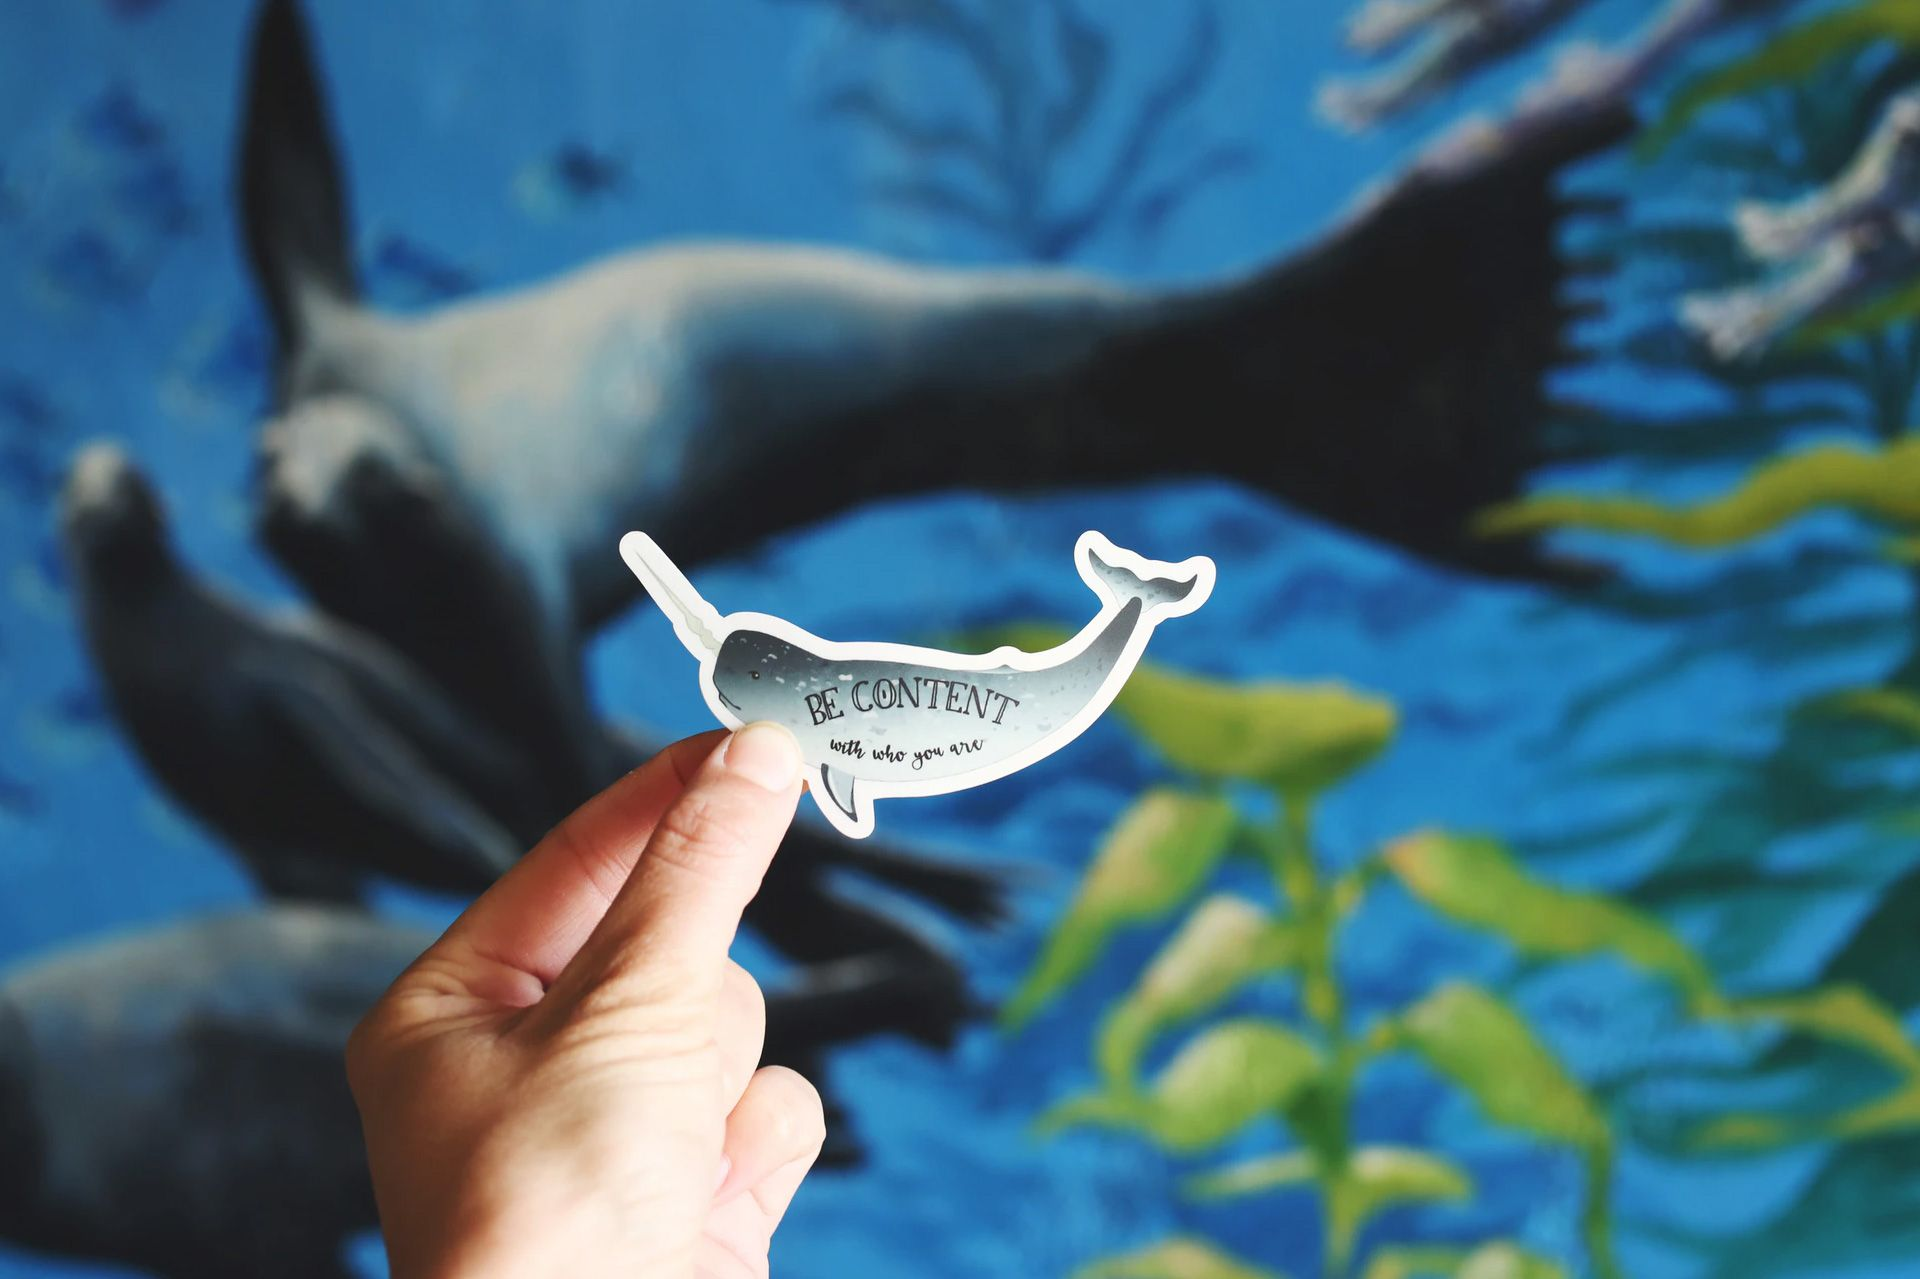 Be Content written on a Dolphin Cutout